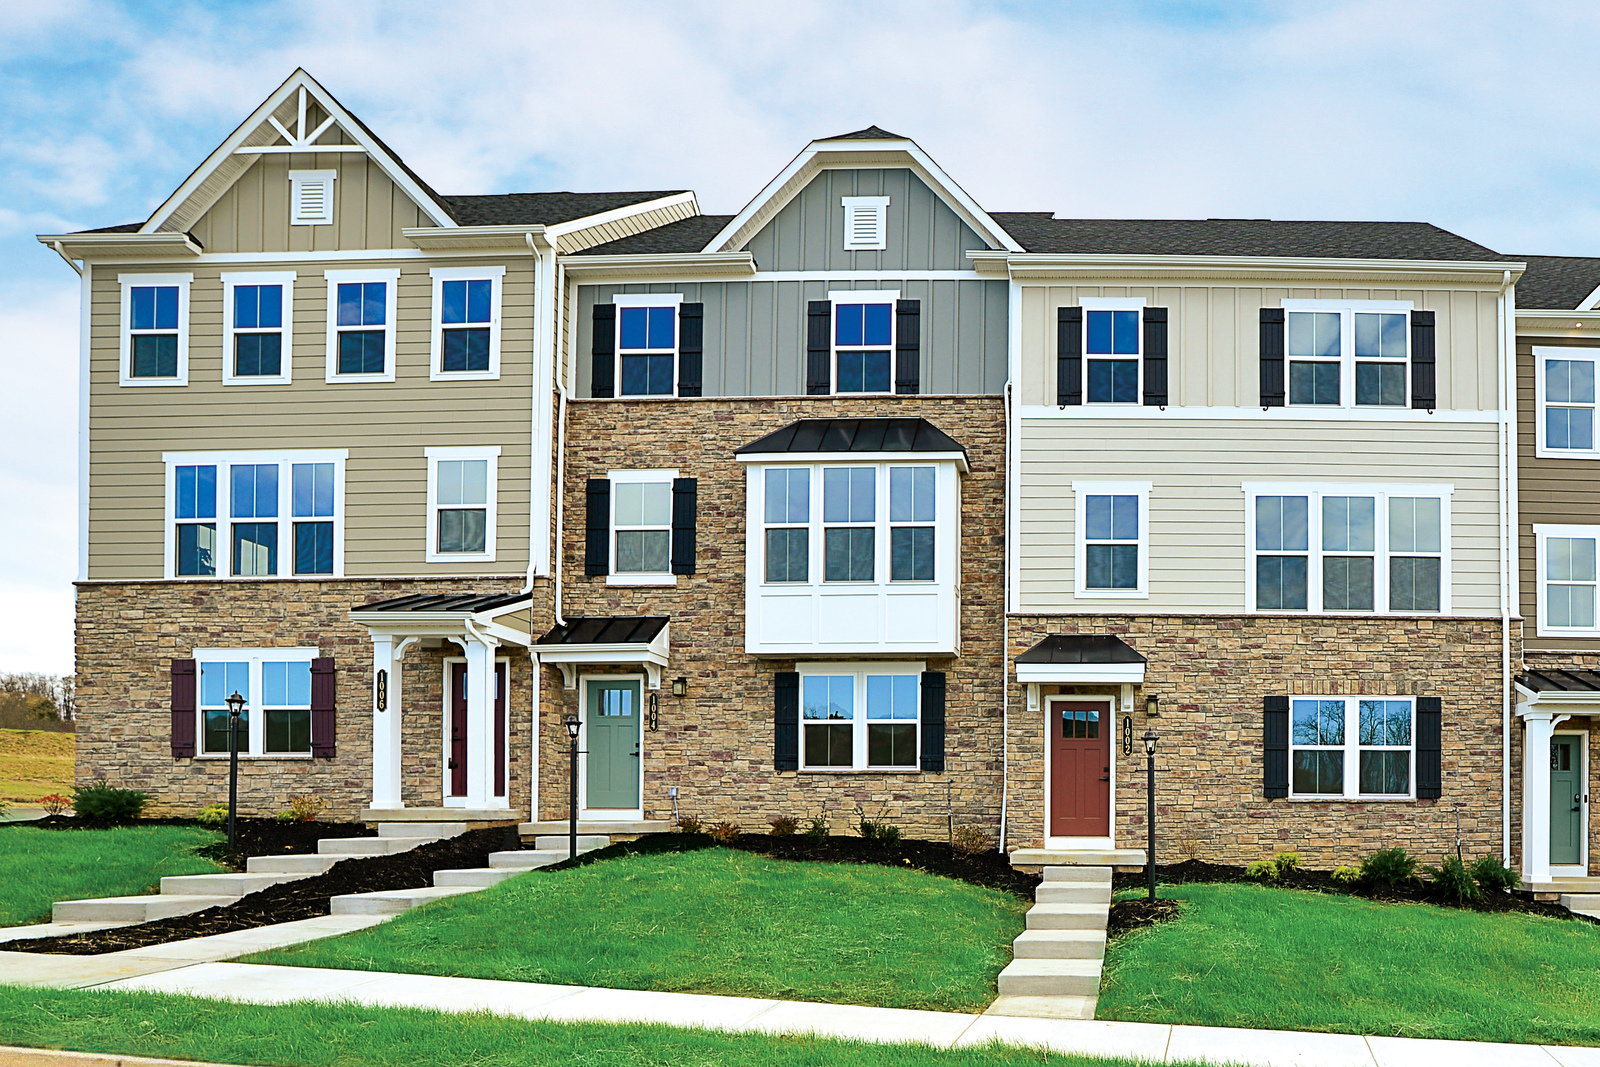 New Homes for sale at Concord Village in Avon, OH within the